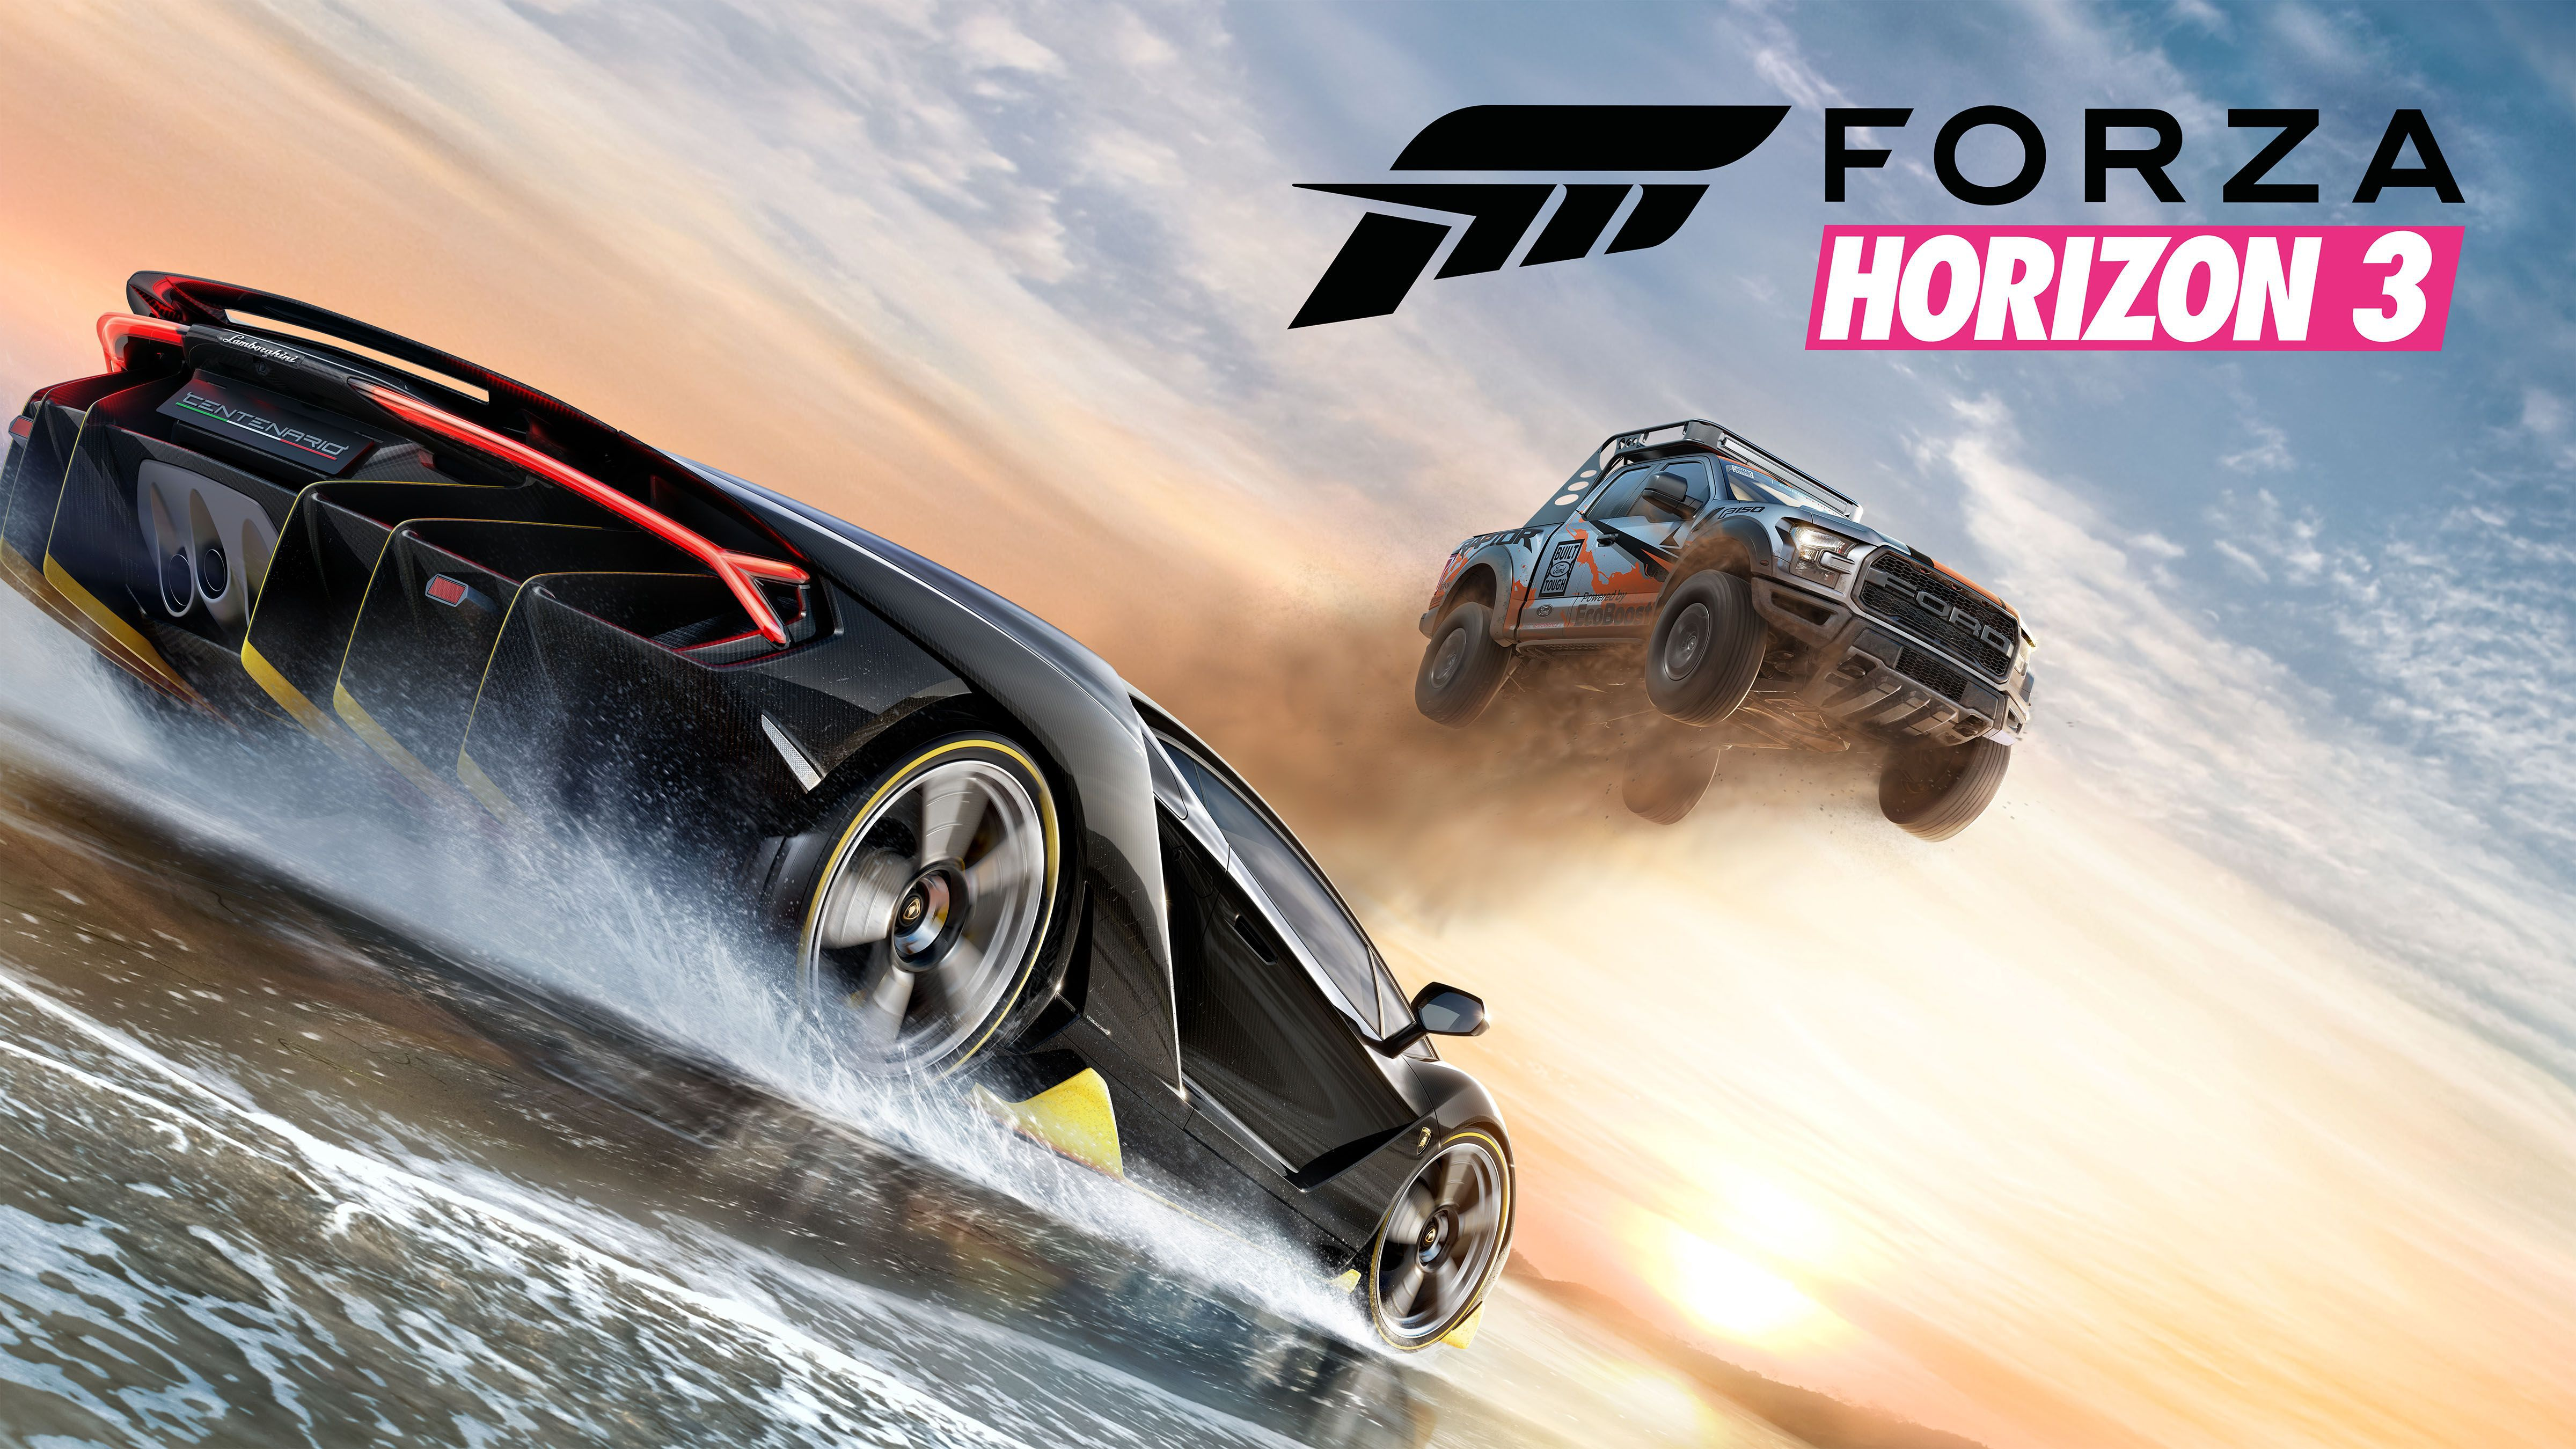 Forza Horizon 3 Wallpapers Images Photos Pictures Backgrounds 4800x2700